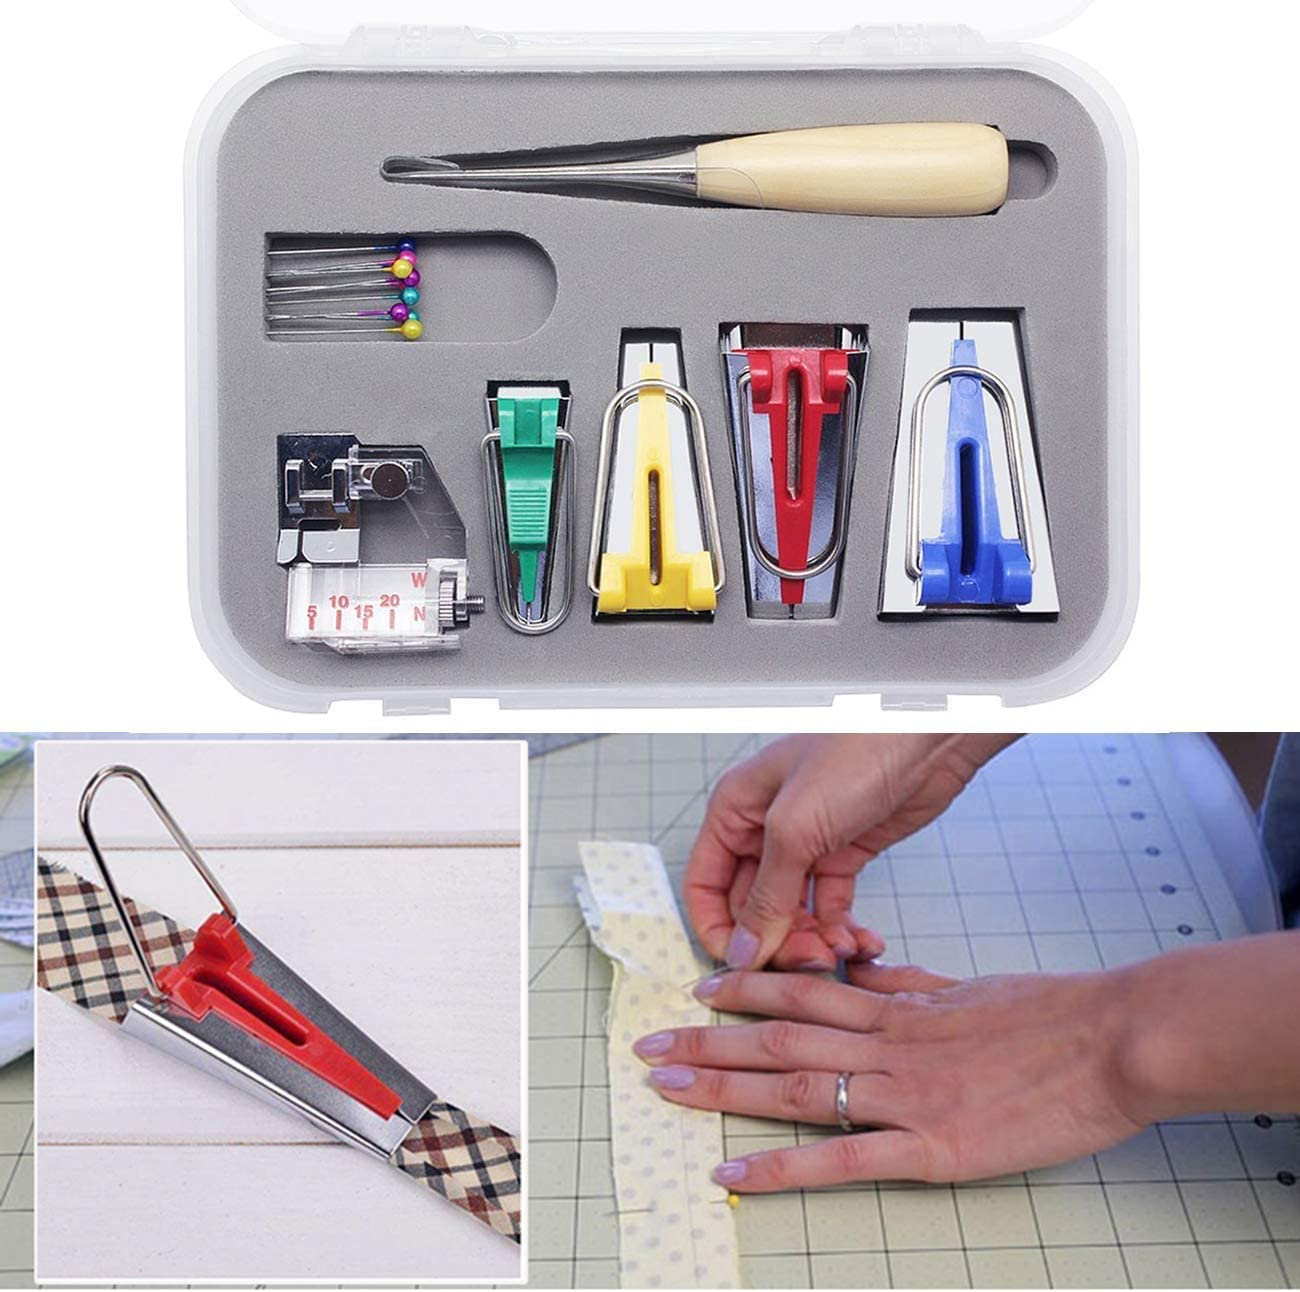 ONTODEX Sewing Machine Tools Multifunction Sewing Bias Tape Maker Set Quilting Patchwork Tools DIY Patchwork Craft Making Tool